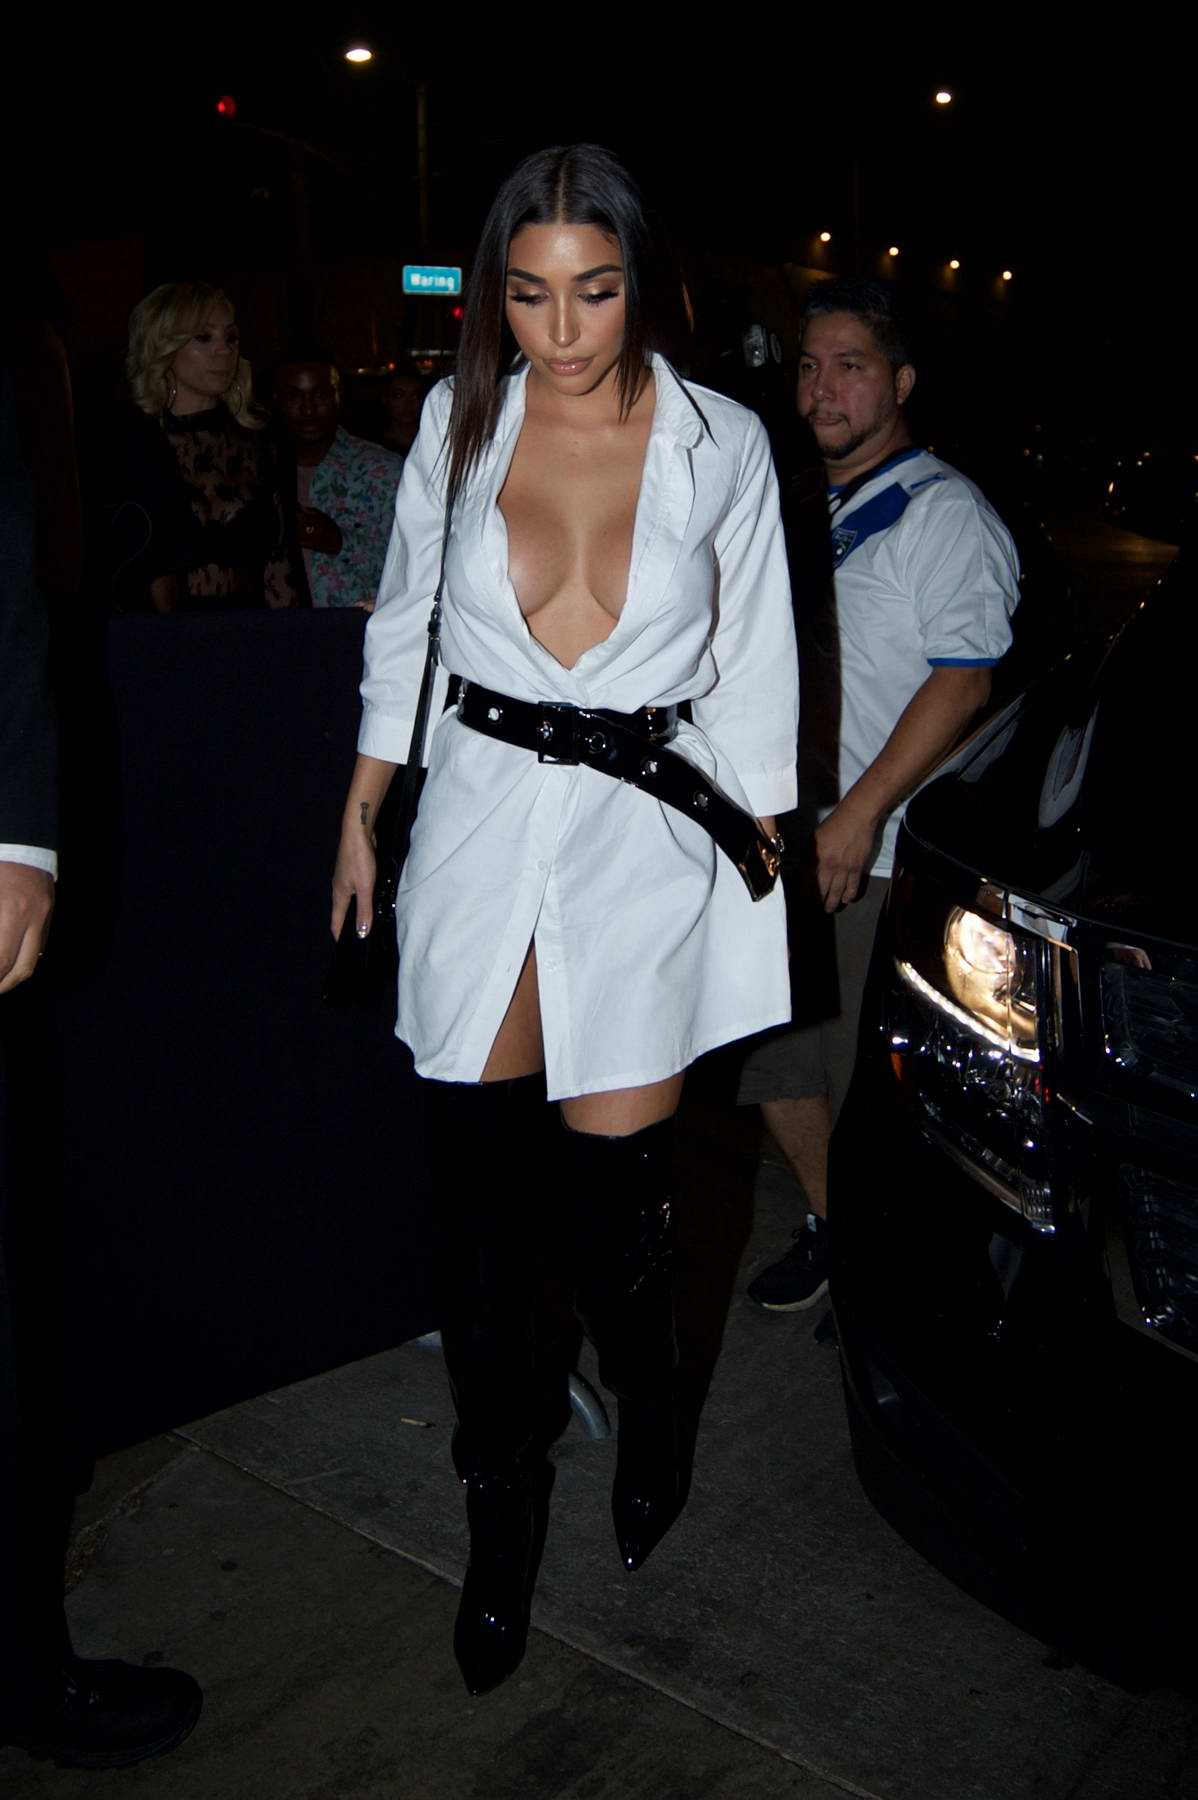 Chantel Jeffries in a white coat arrive at the Poppy nightclub in West Hollywood, Los Angeles